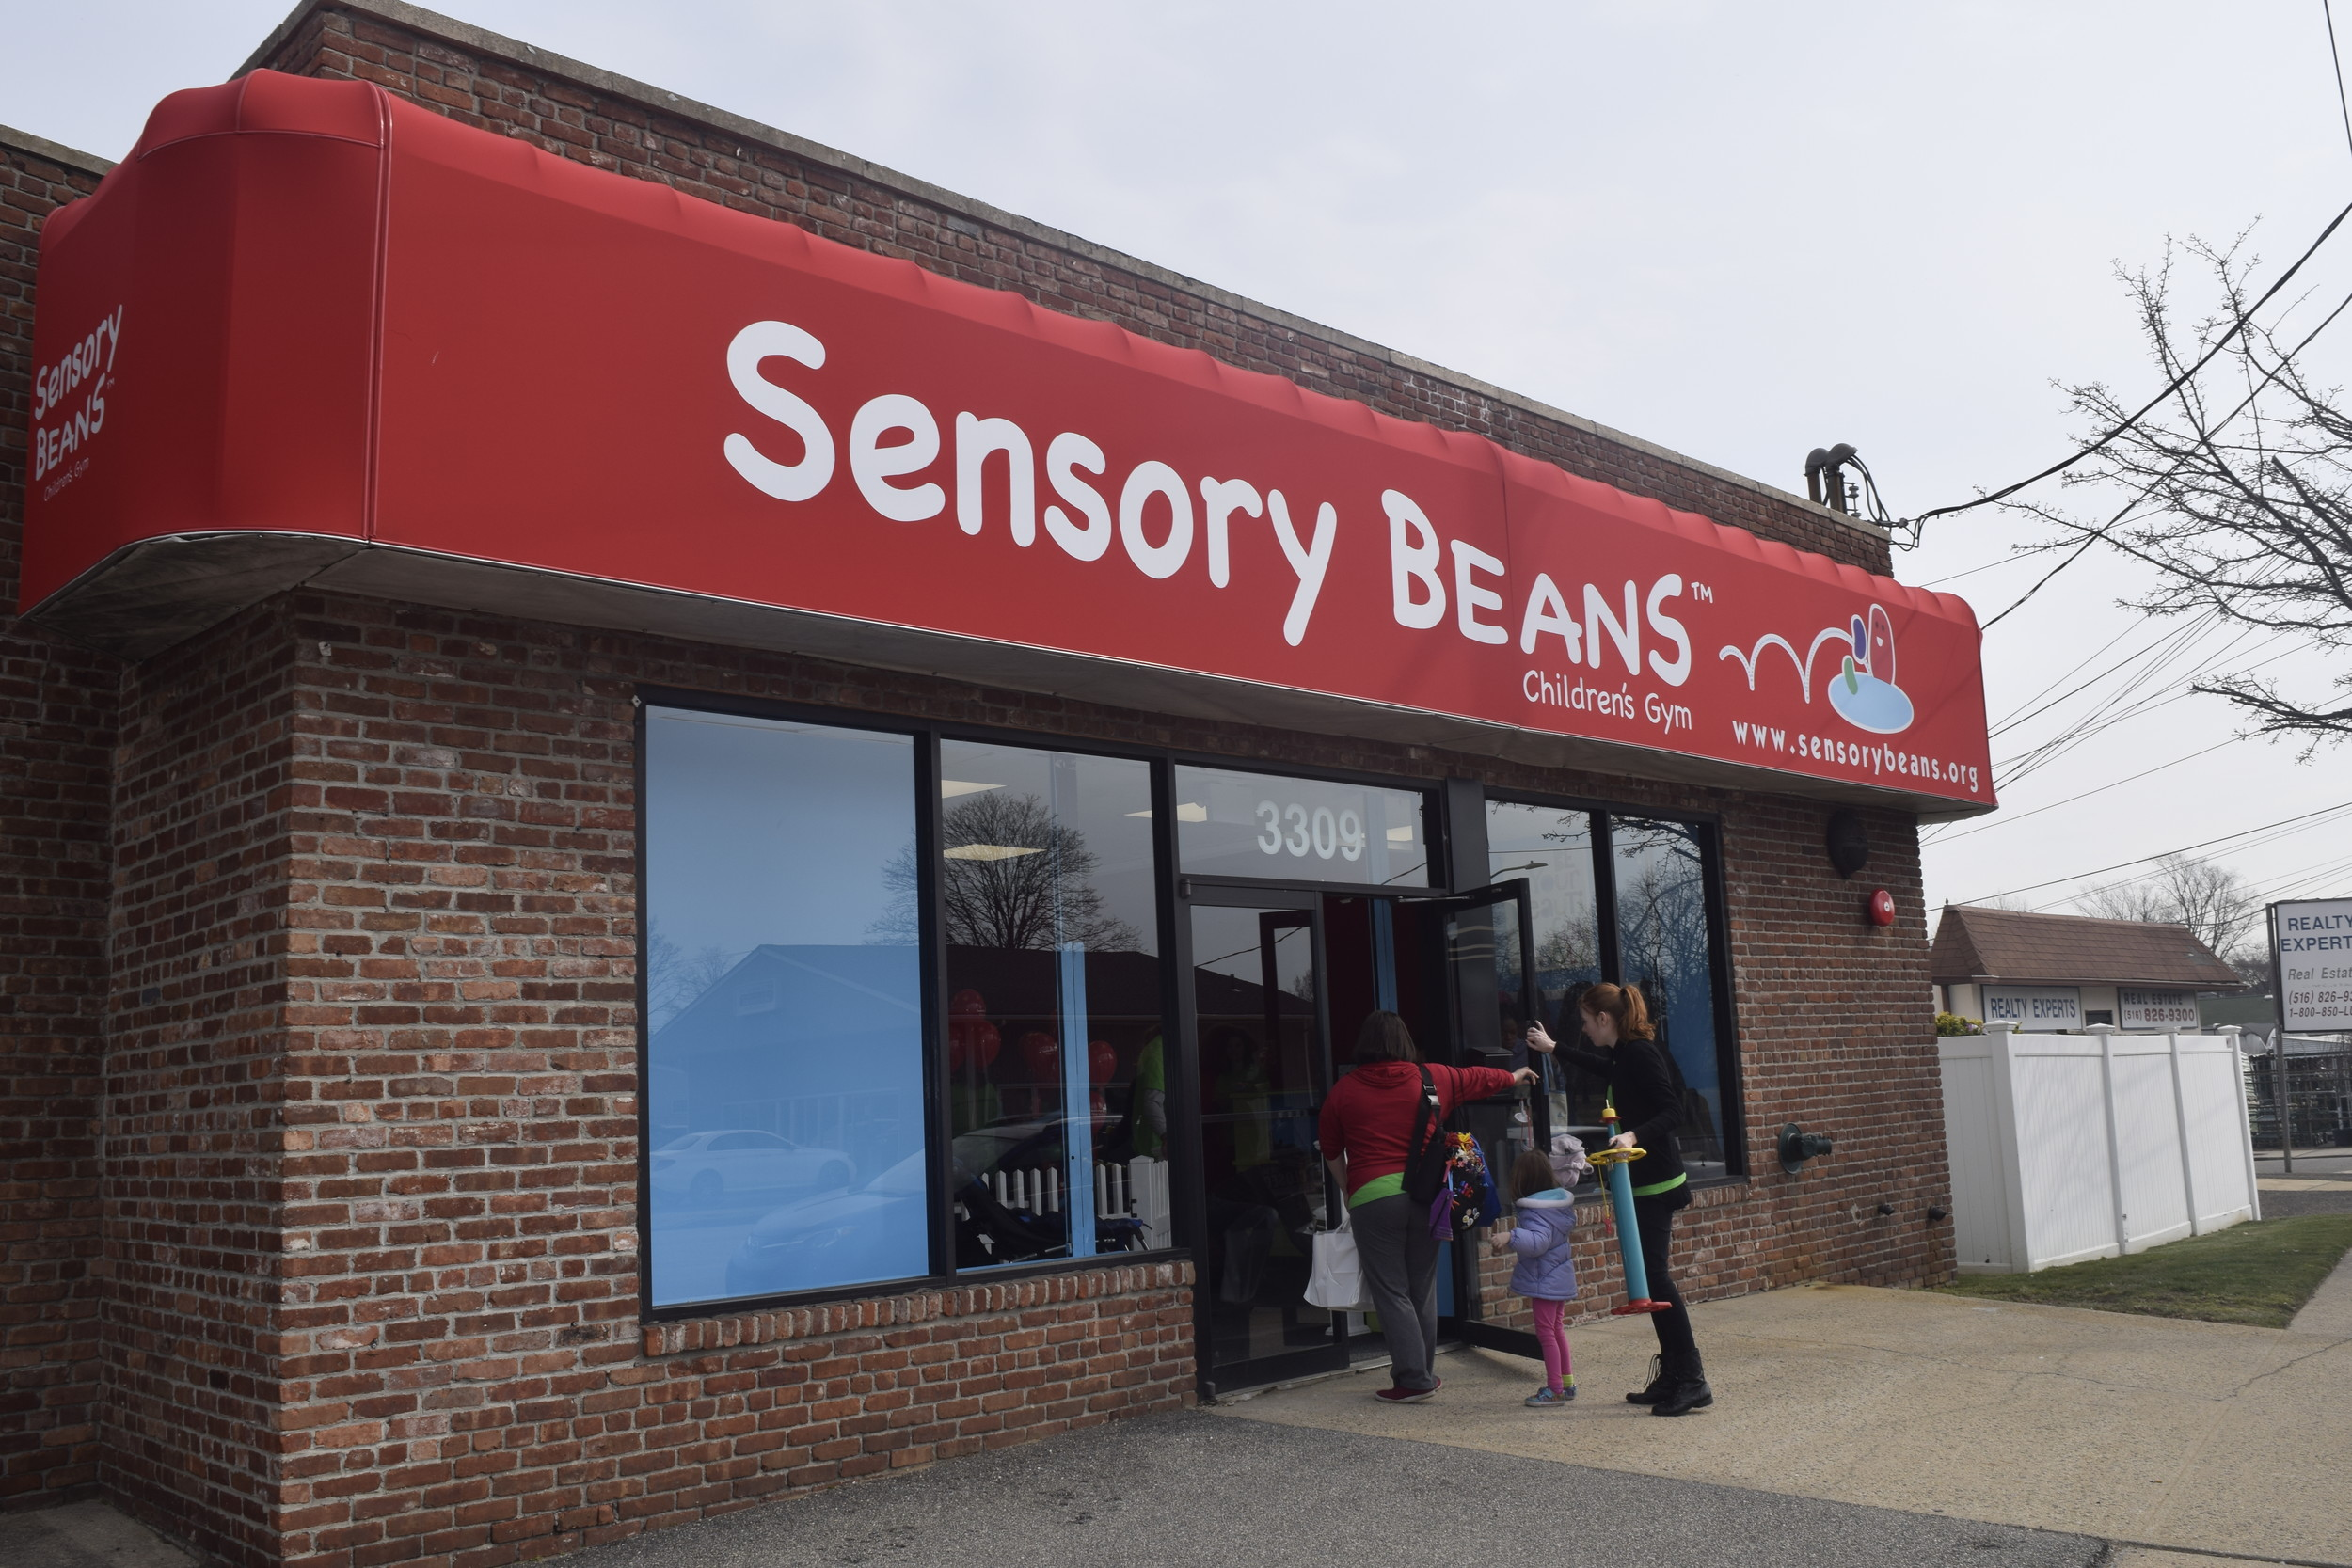 Sensory Beans opened on March 25 on Merrick Road in Wantagh.